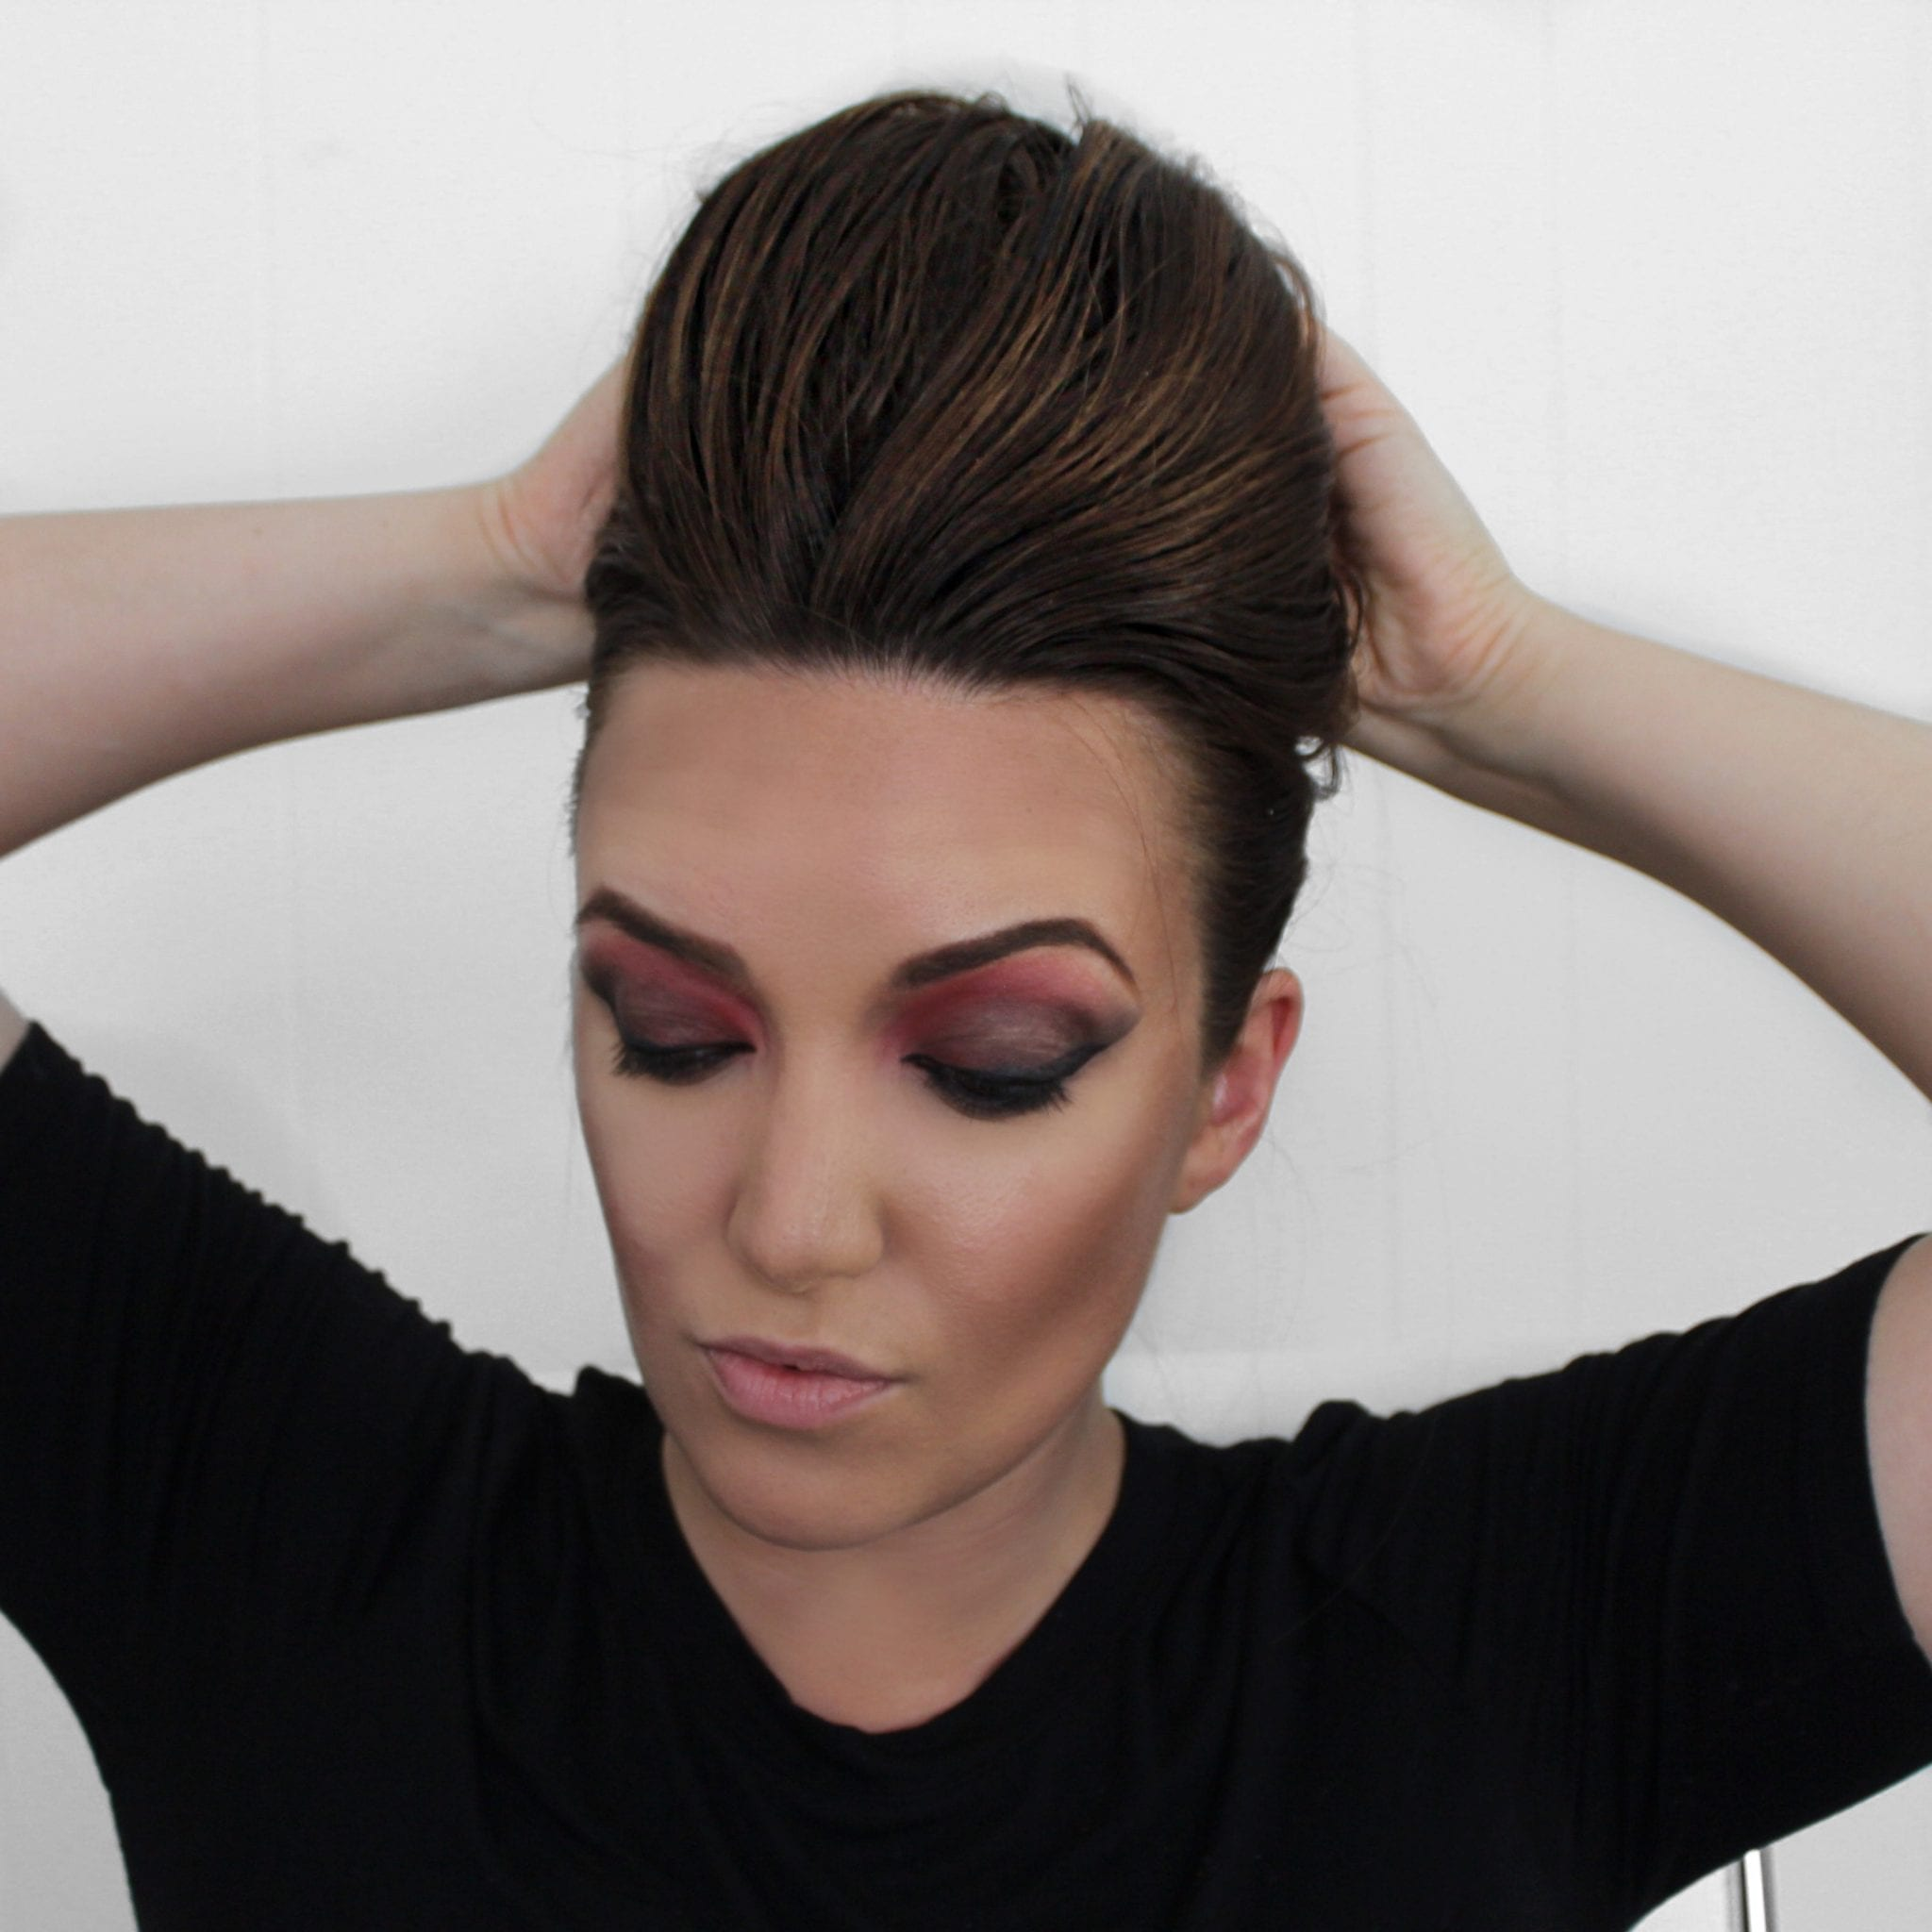 DIY HALLOWEEN HAIR AND MAKEUP IDEAS: the Fleek Fairy featured by popular San Francisco style blogger, Just Add Glam